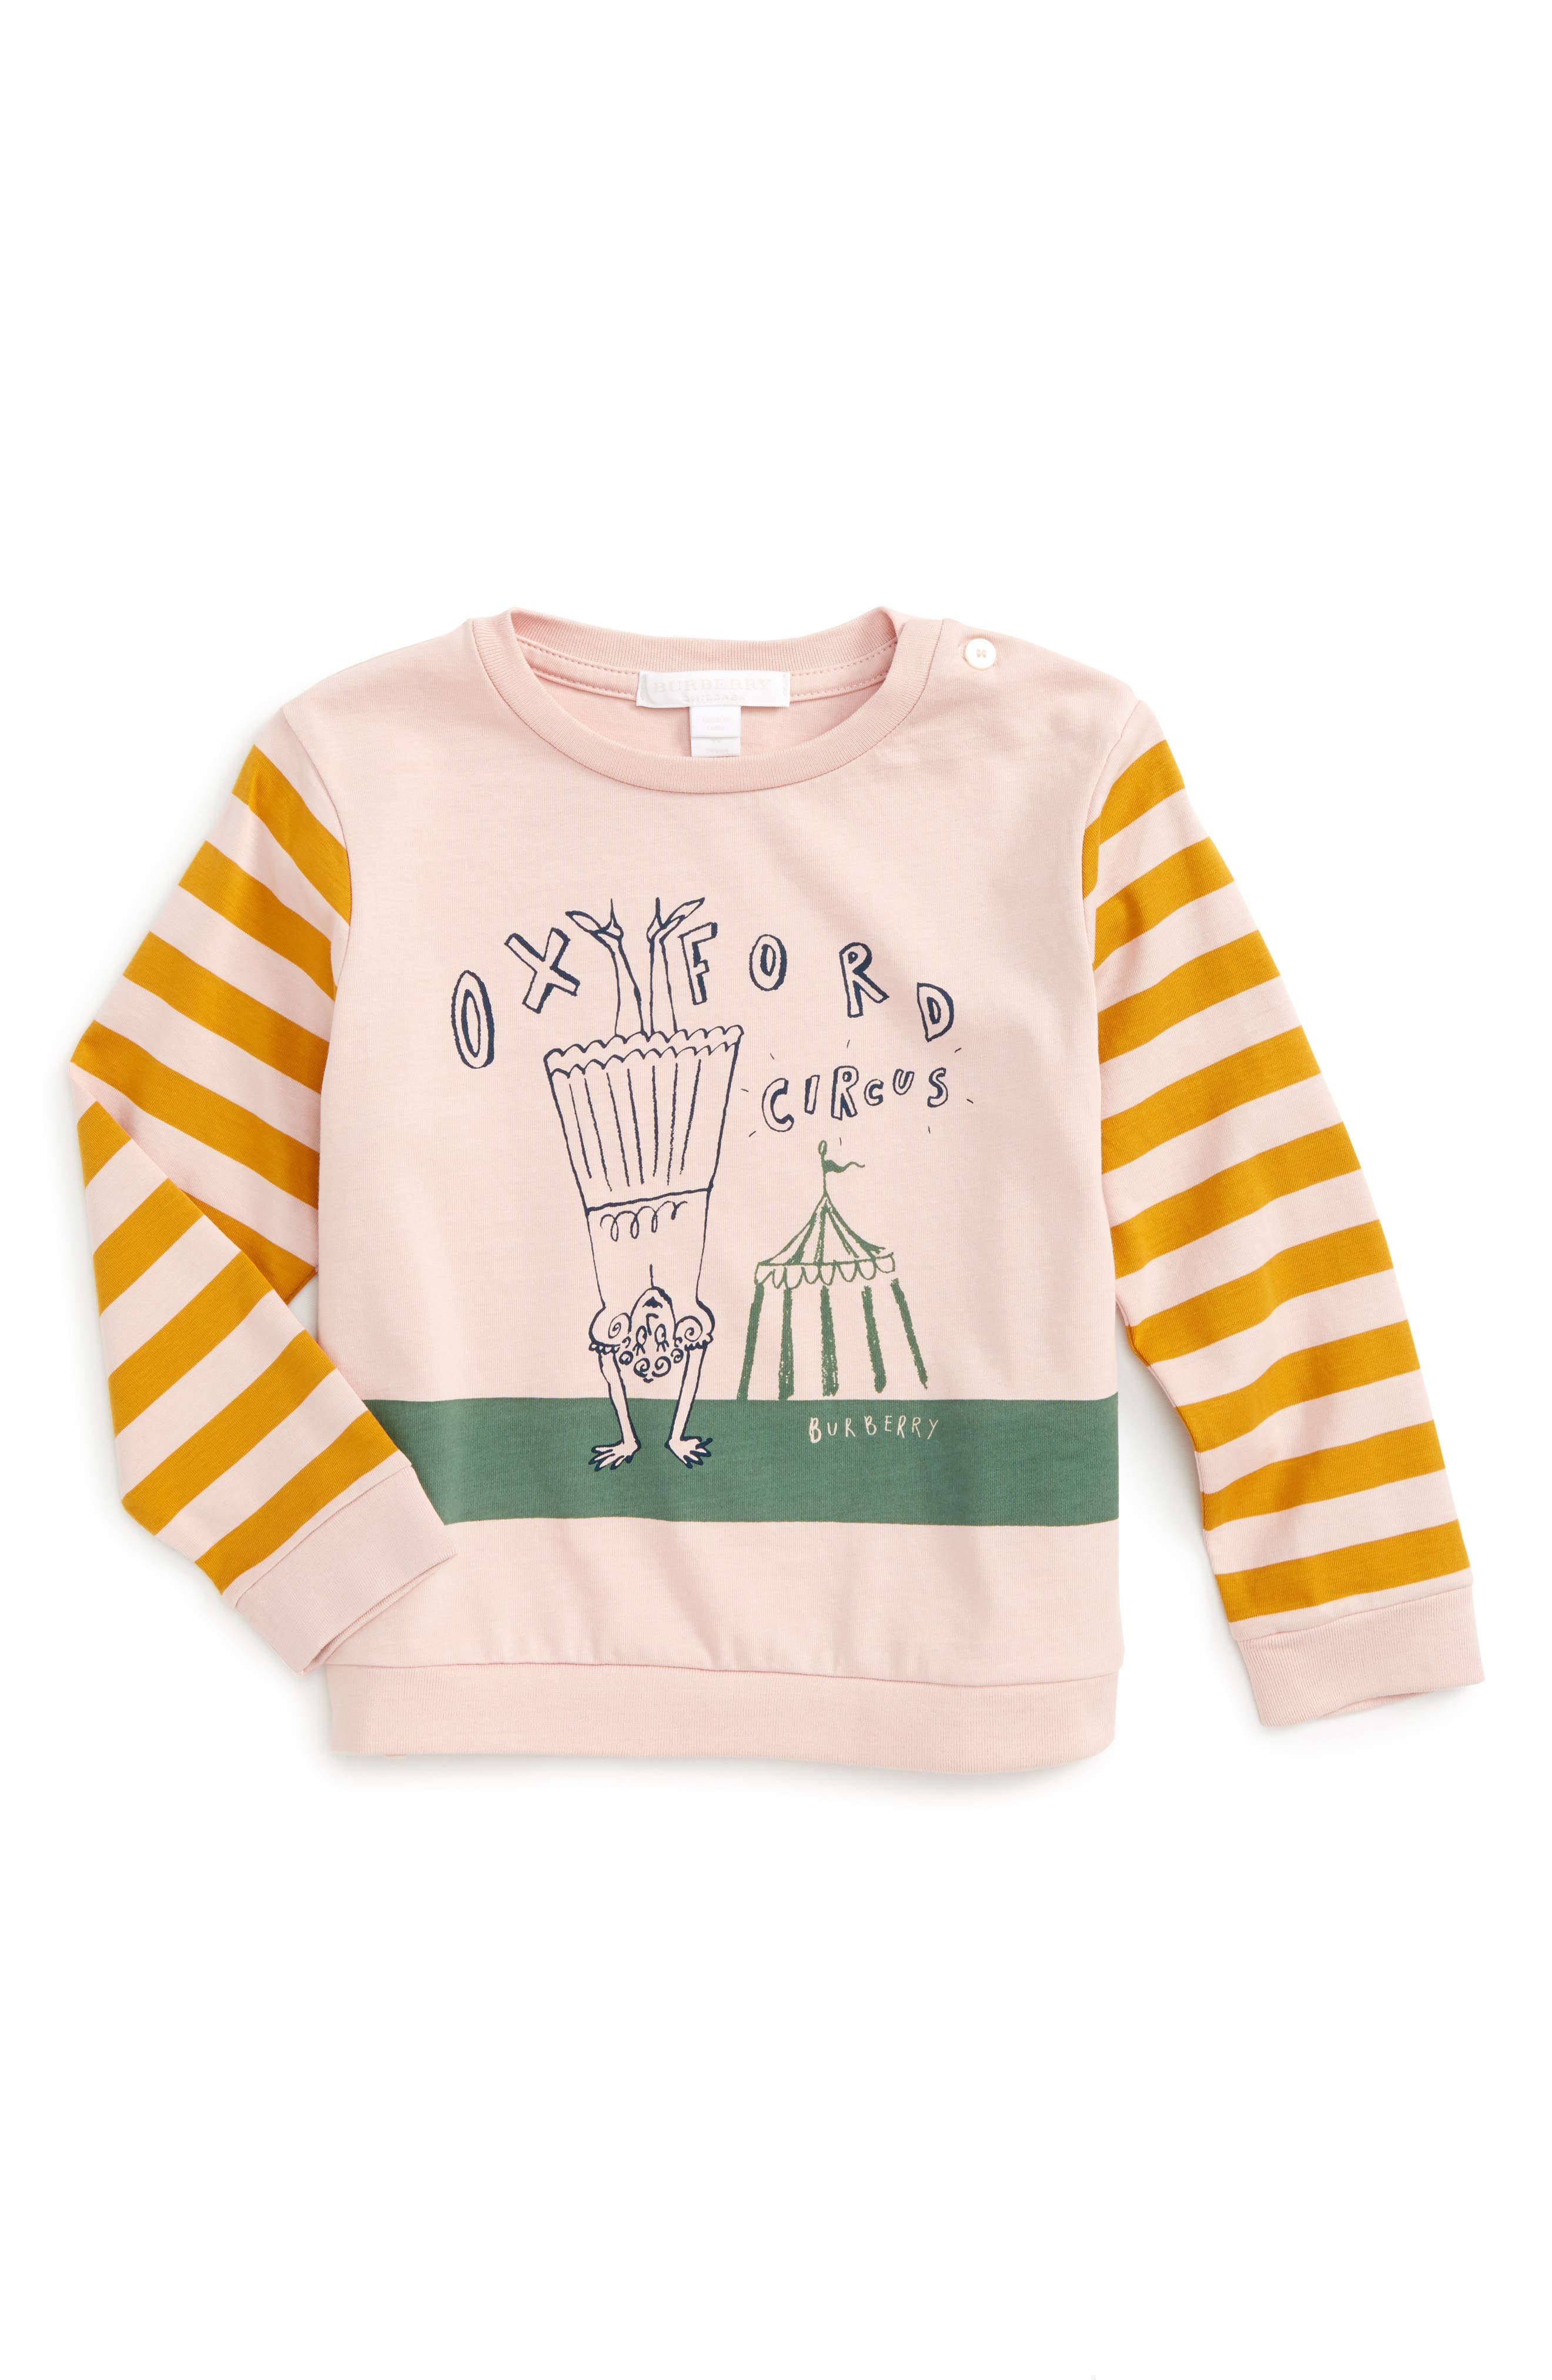 London Icons Graphic Cotton Tee,                         Main,                         color, Chalk Pink